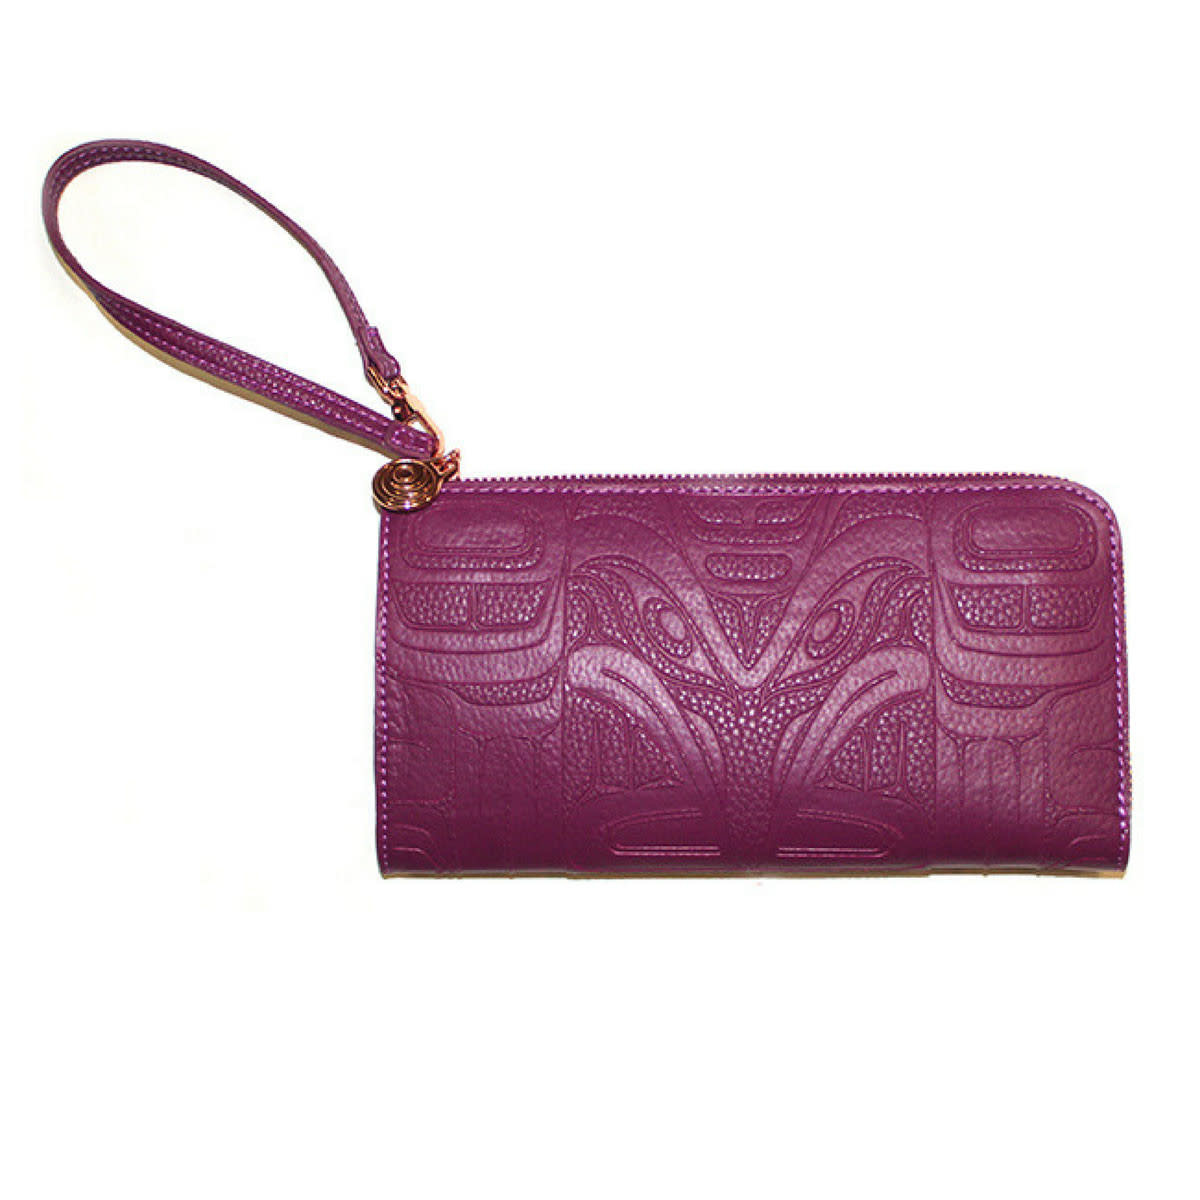 Embossed Fashion Clutch - Raven by Francis Horne Sr.-2